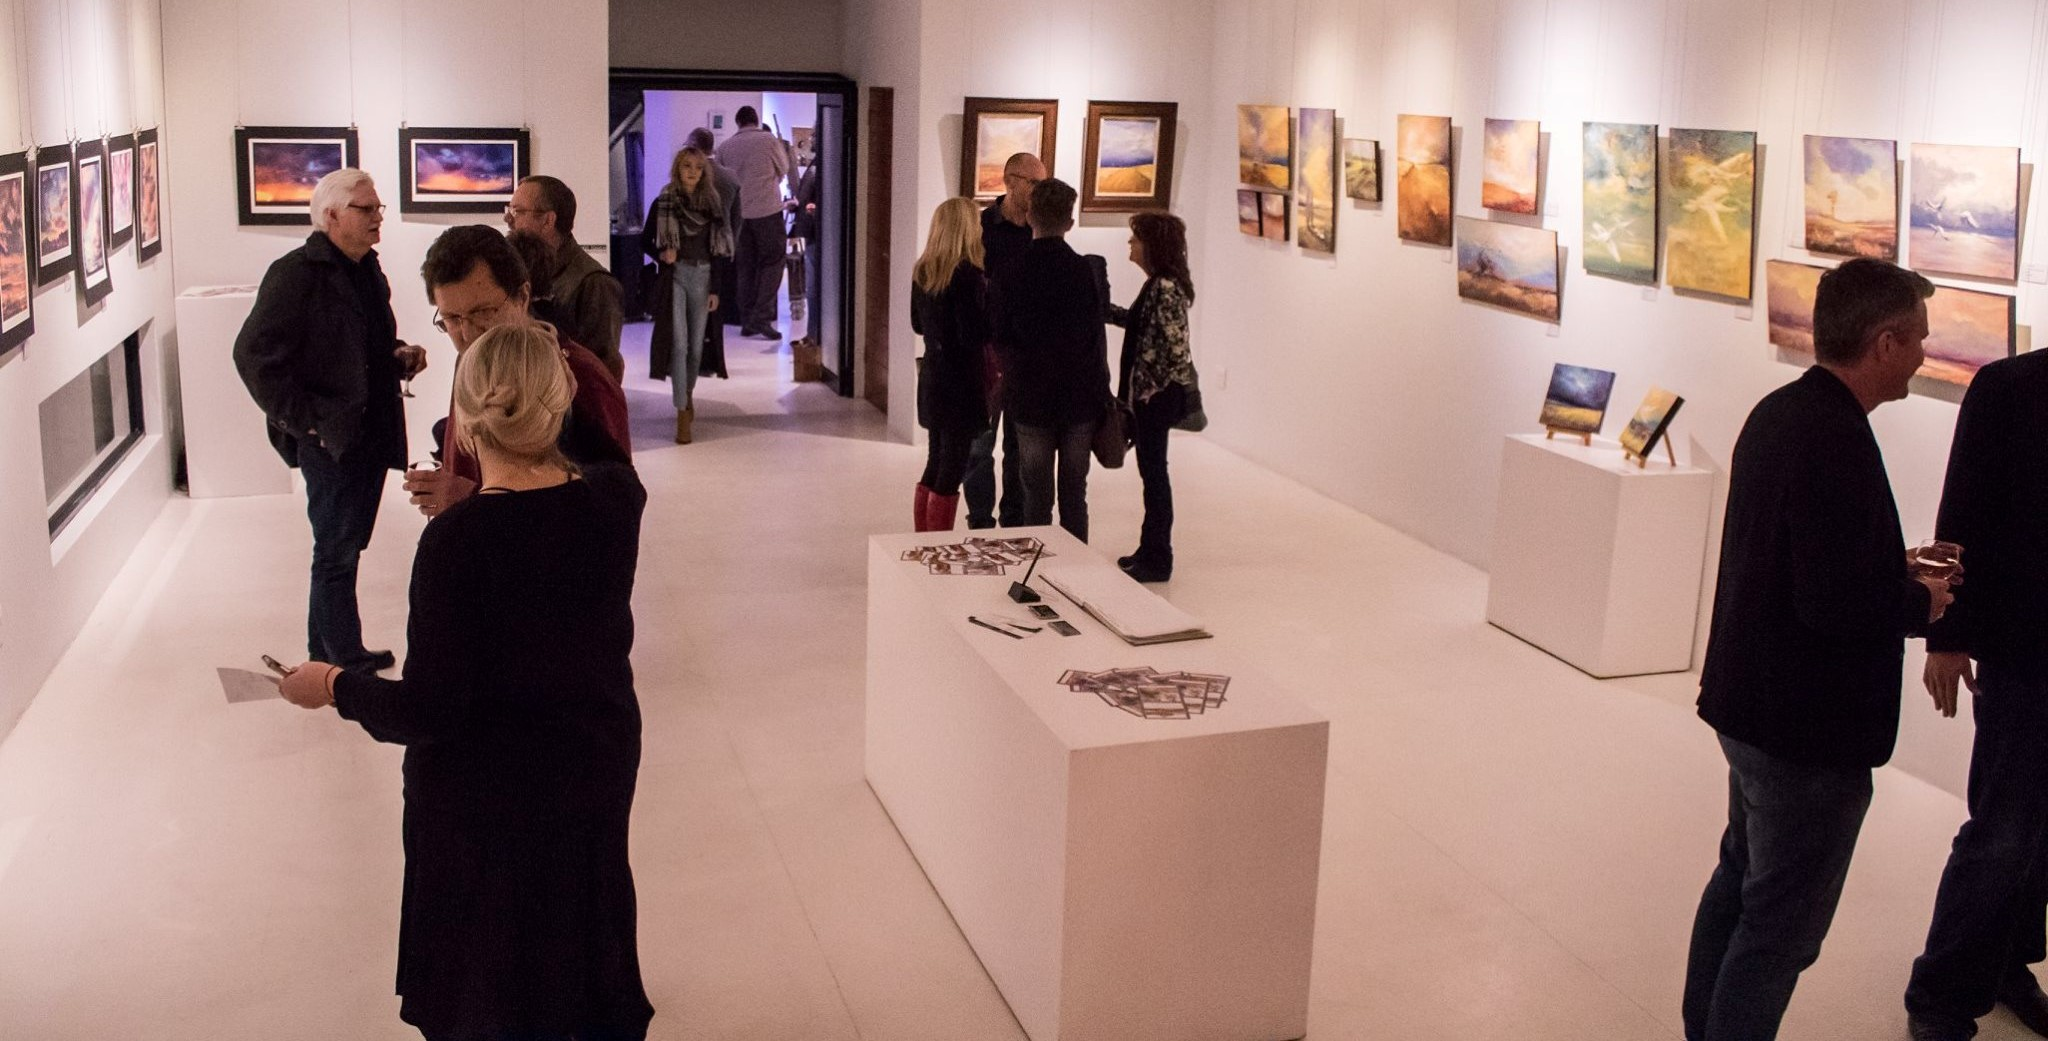 Opening night of Nests in the Clouds art exhibition at Gallery on Leviseur in Bloemfontein